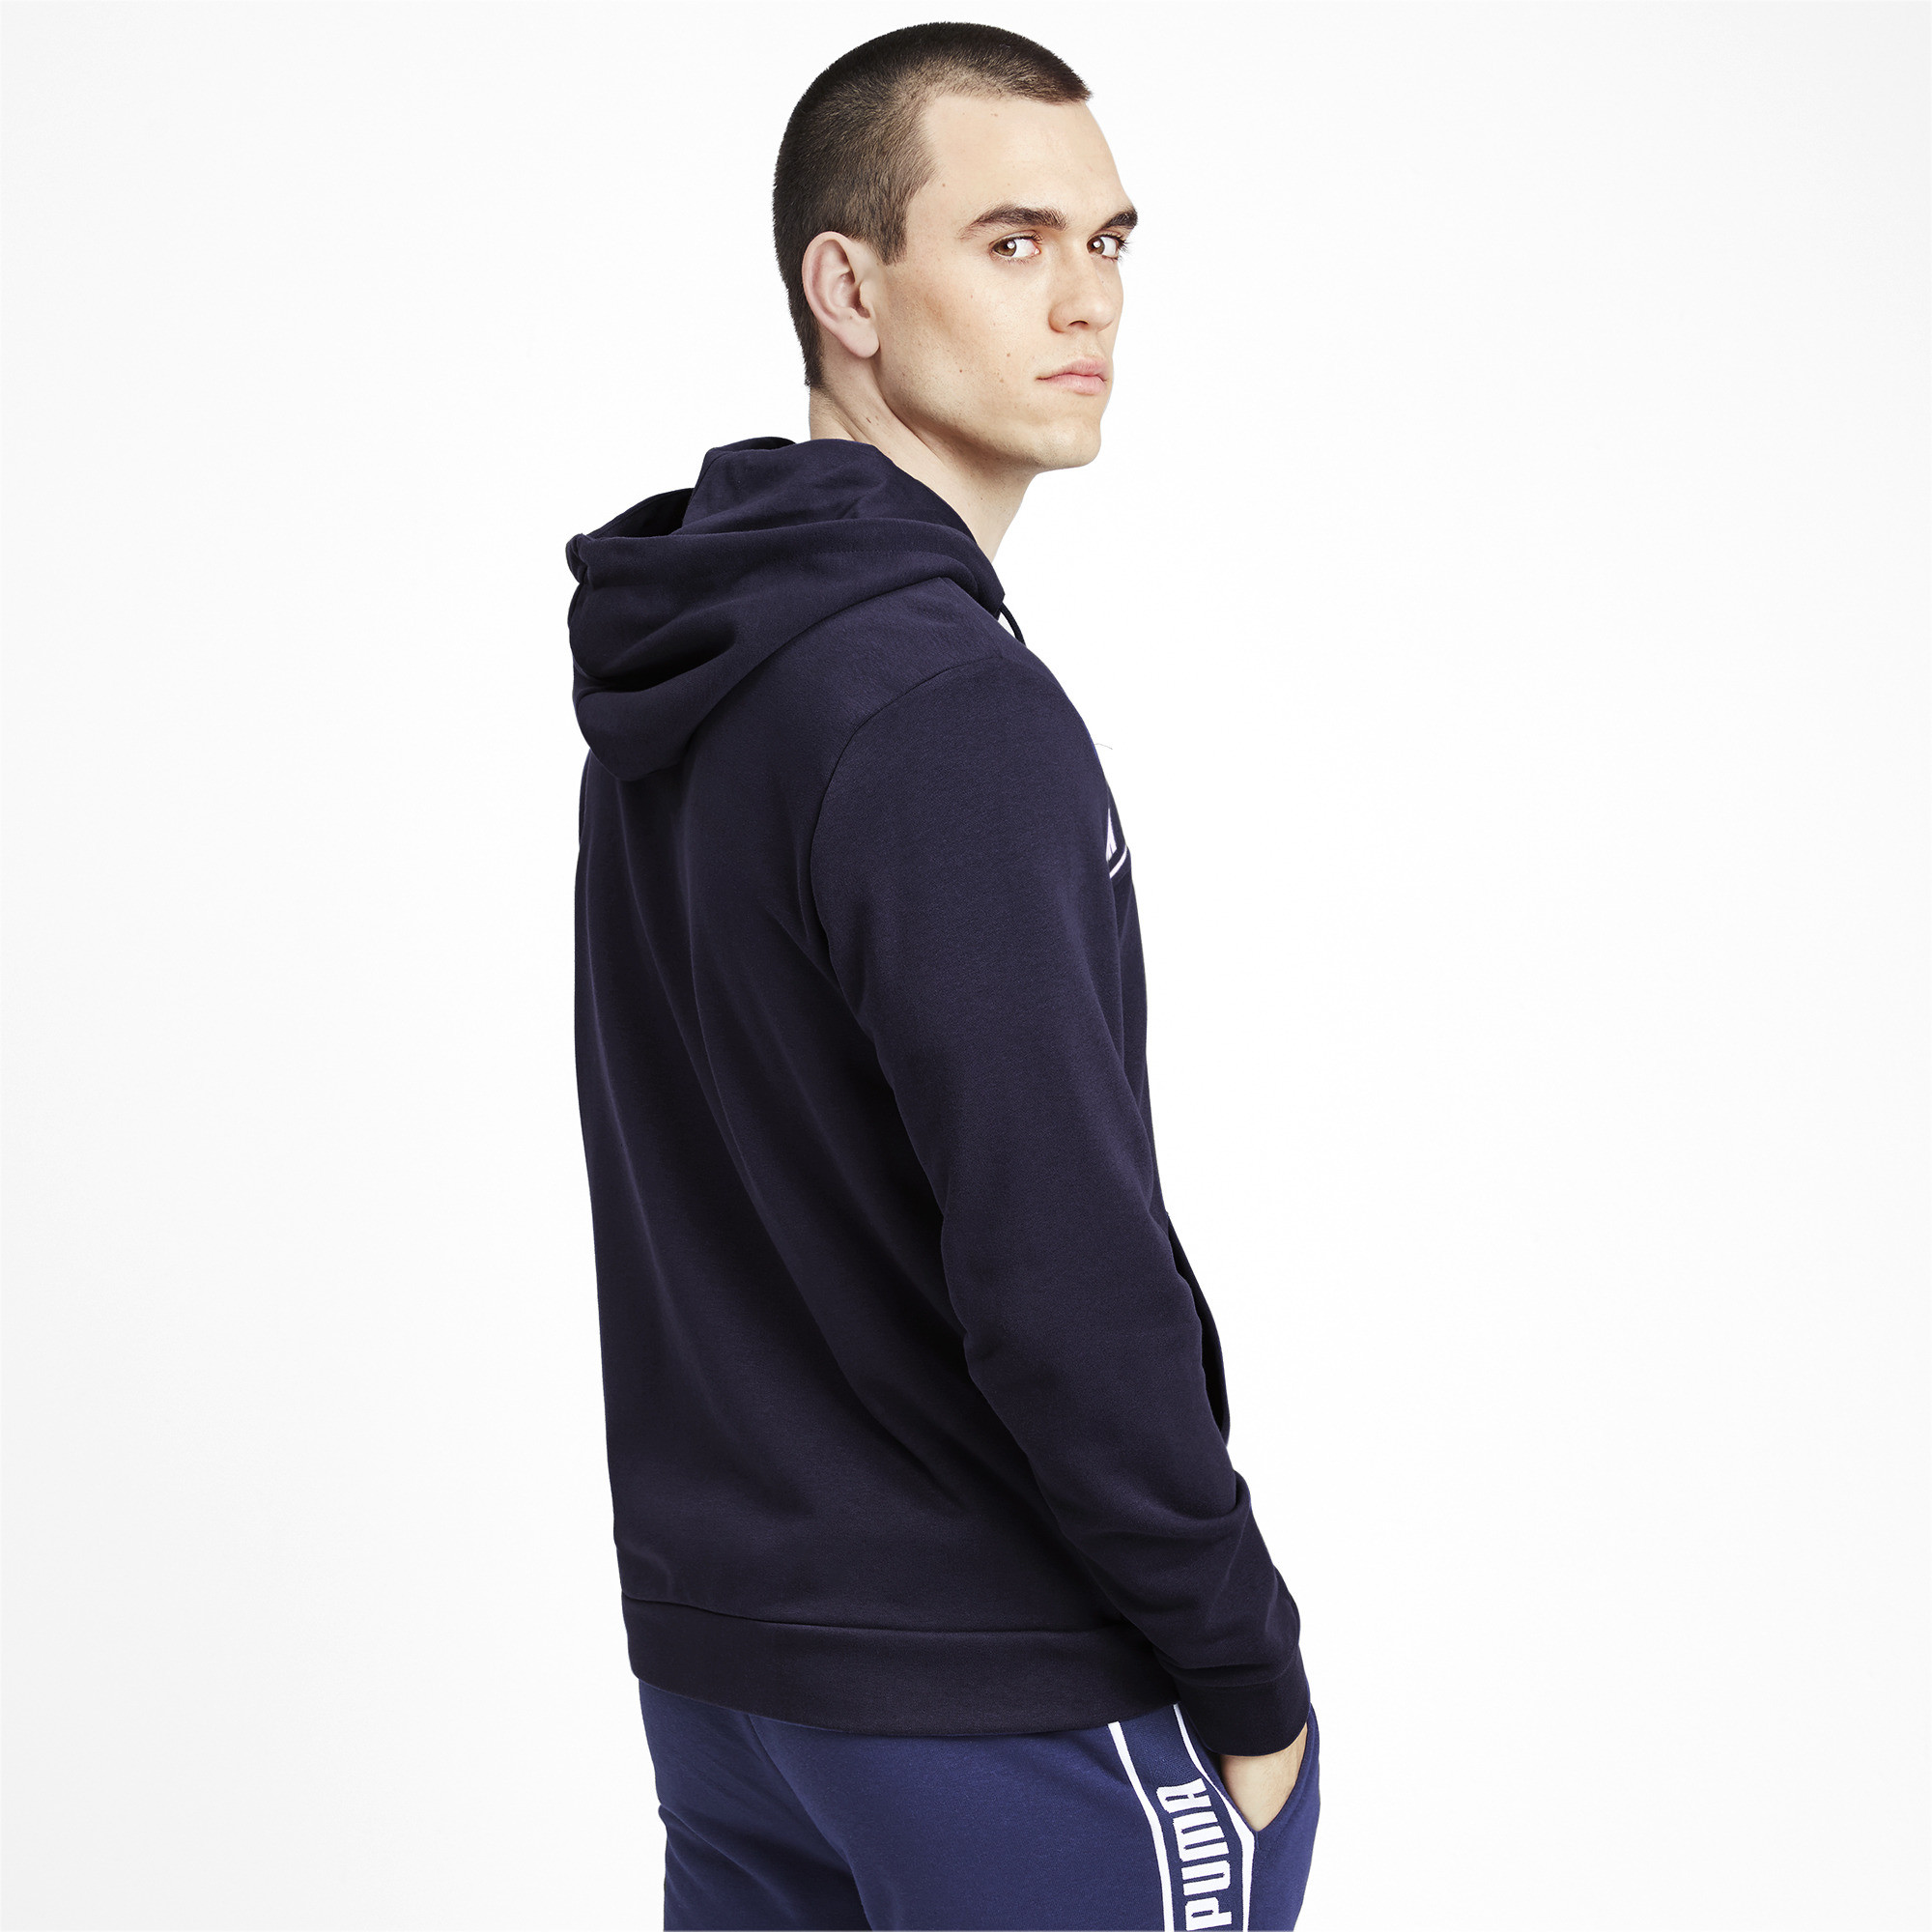 PUMA-Amplified-Men-039-s-Hooded-Jacket-Men-Sweat-Basics thumbnail 5